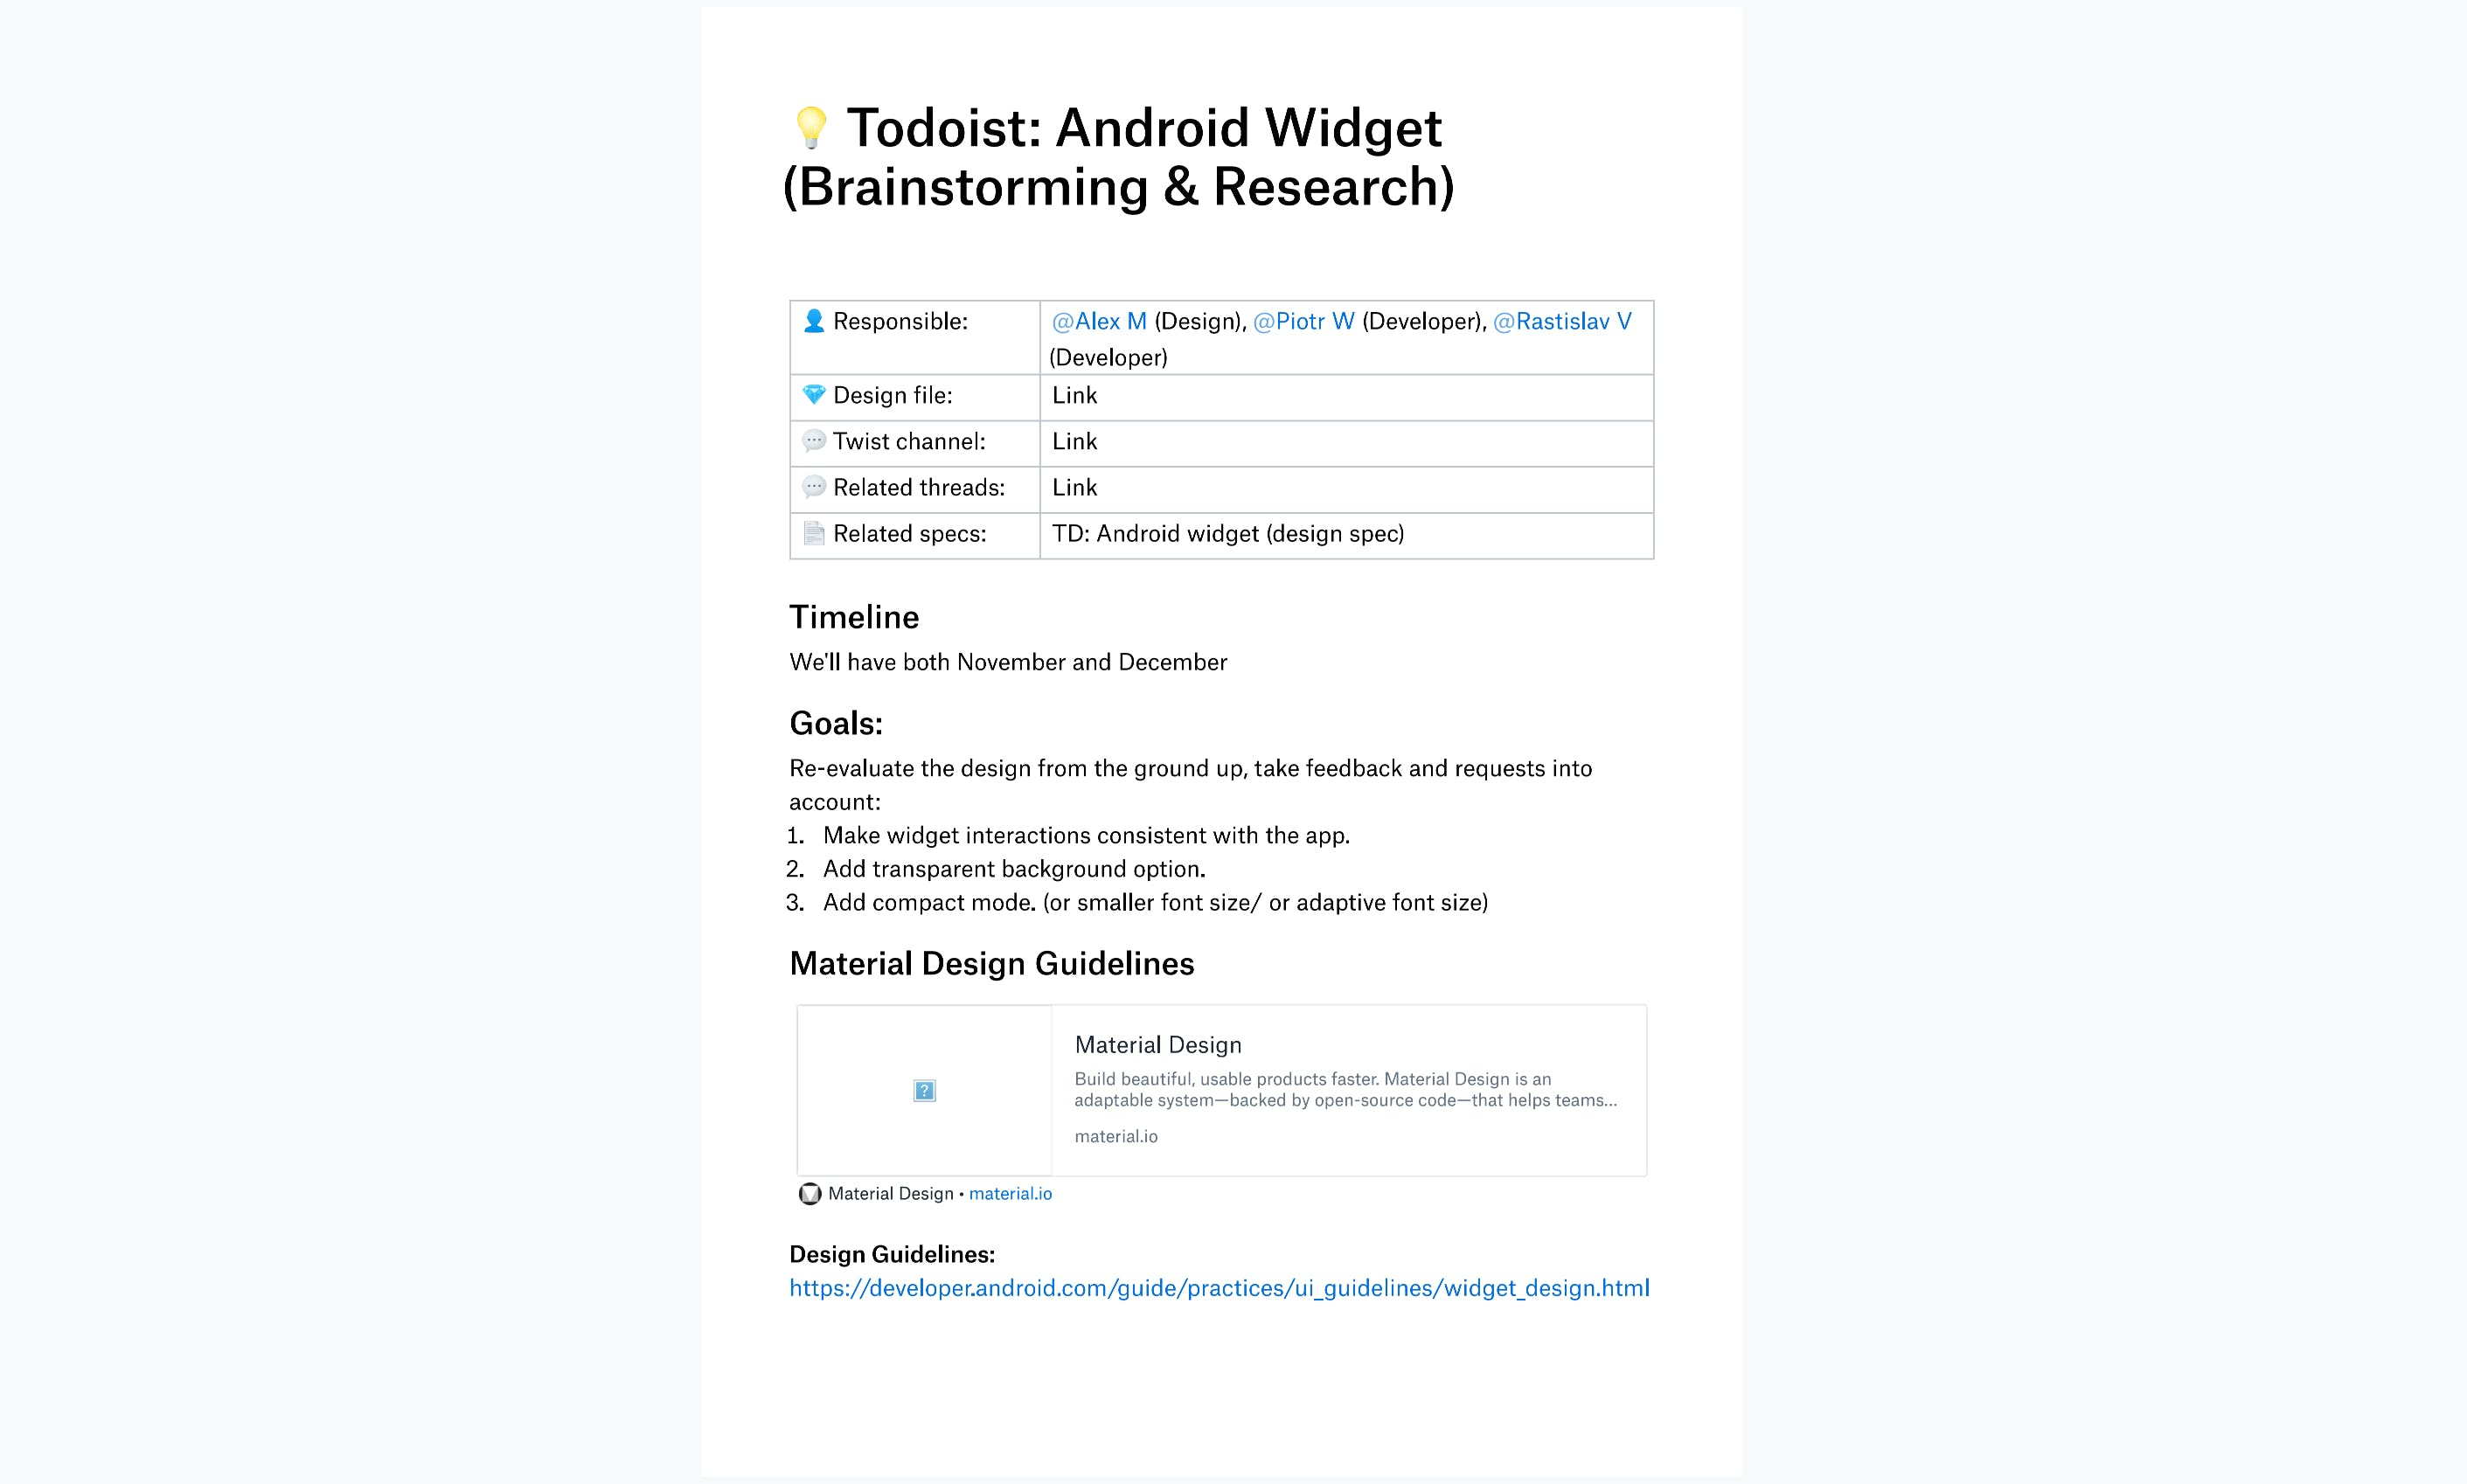 Brainstorming & Research document for Todoist's Android Widget